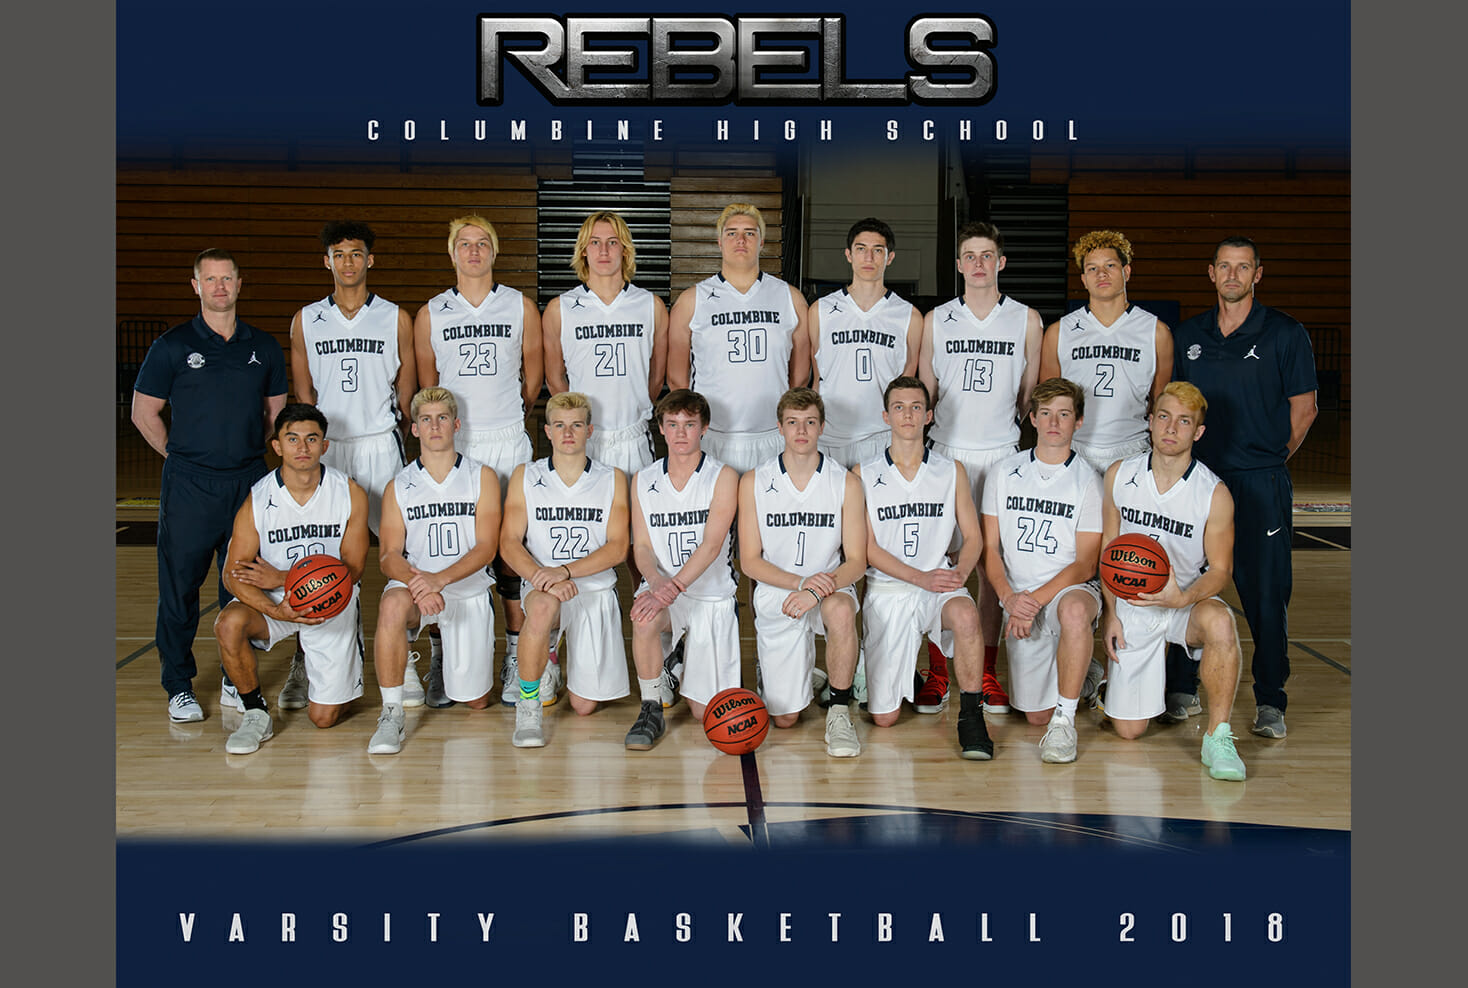 Team Photo of Columbine Highs school varsity basketball